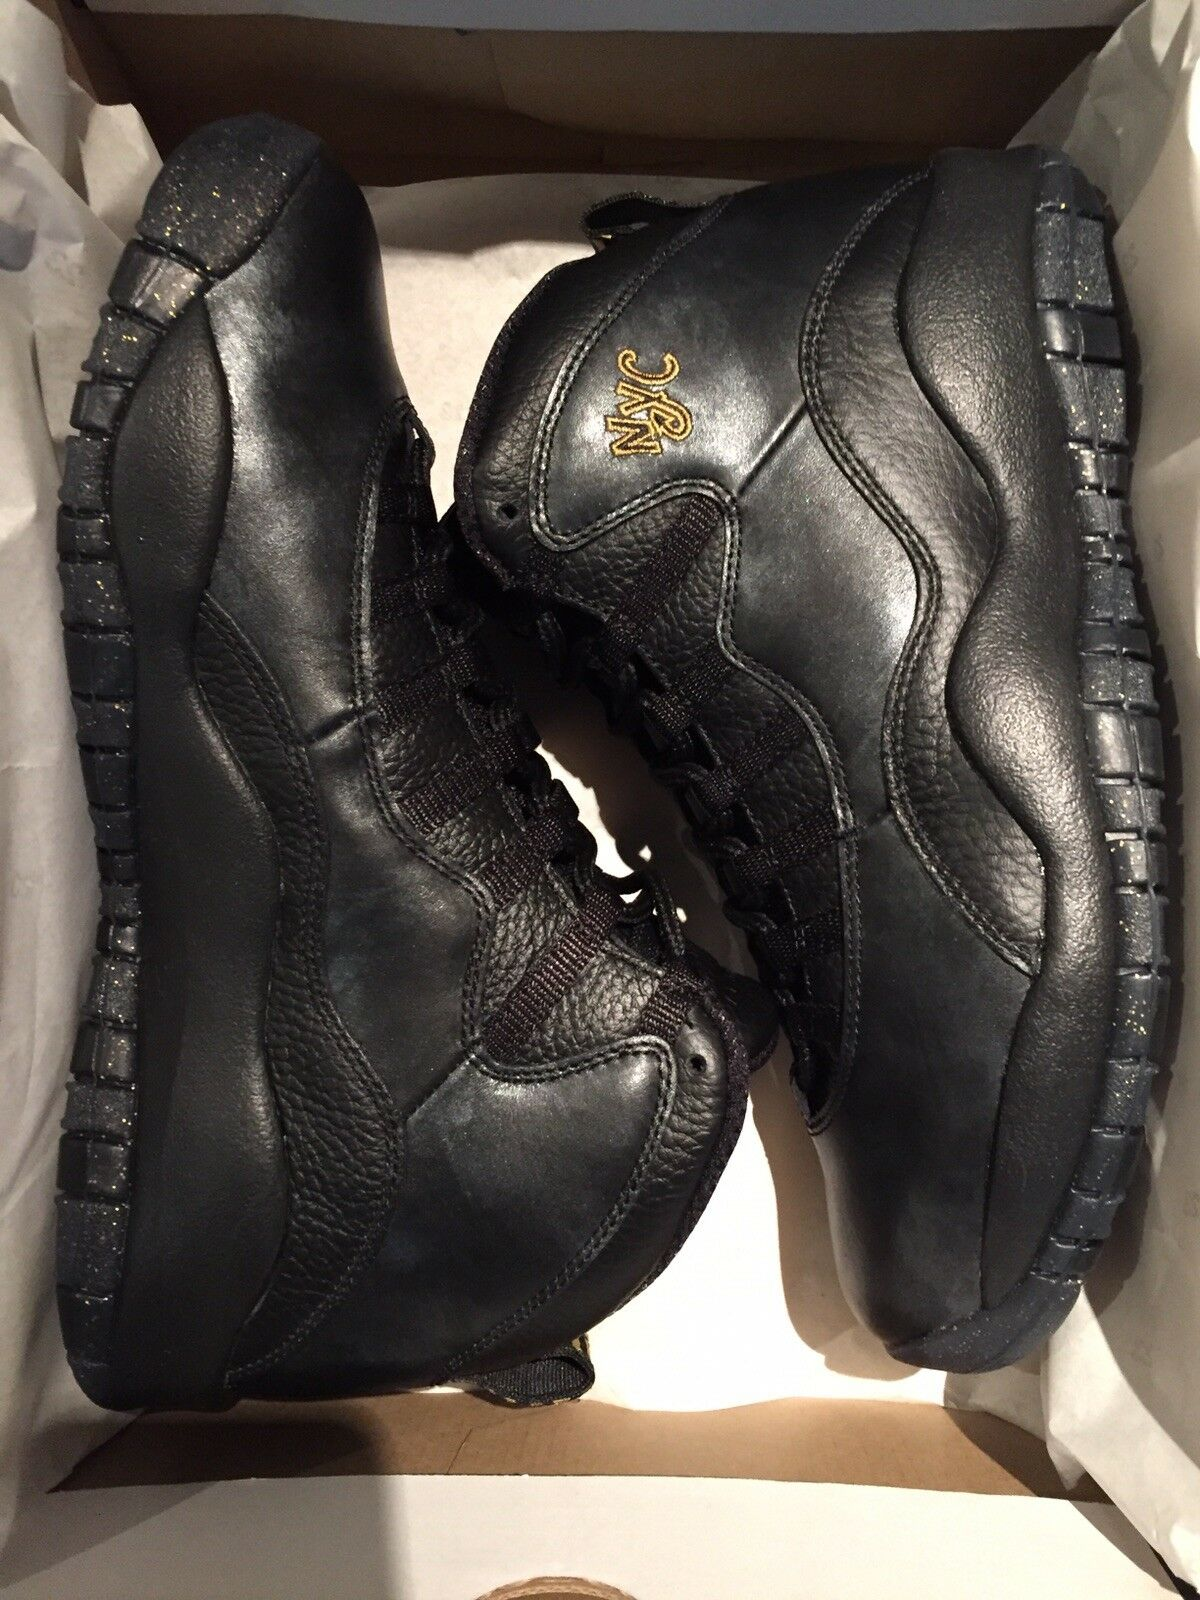 Nike Air Jordan 10 Retro City Collection 'NYC Raro X' DS nos 9.5 Raro 'NYC Limitado 284a97